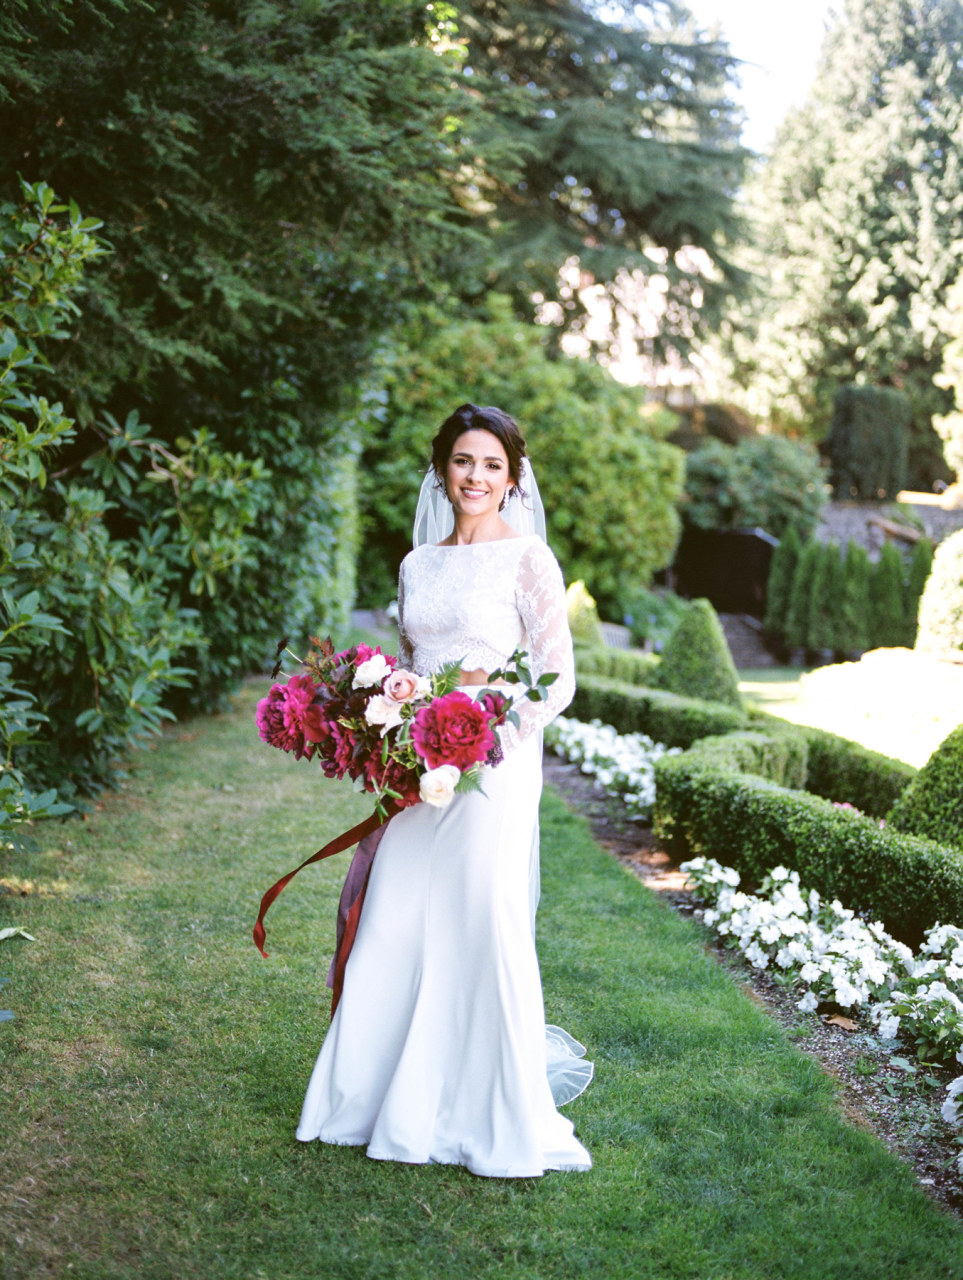 fine-art-wedding-florist-foraged-floral-lewis-and-clark-college-wedding-with-red-flowers.jpg